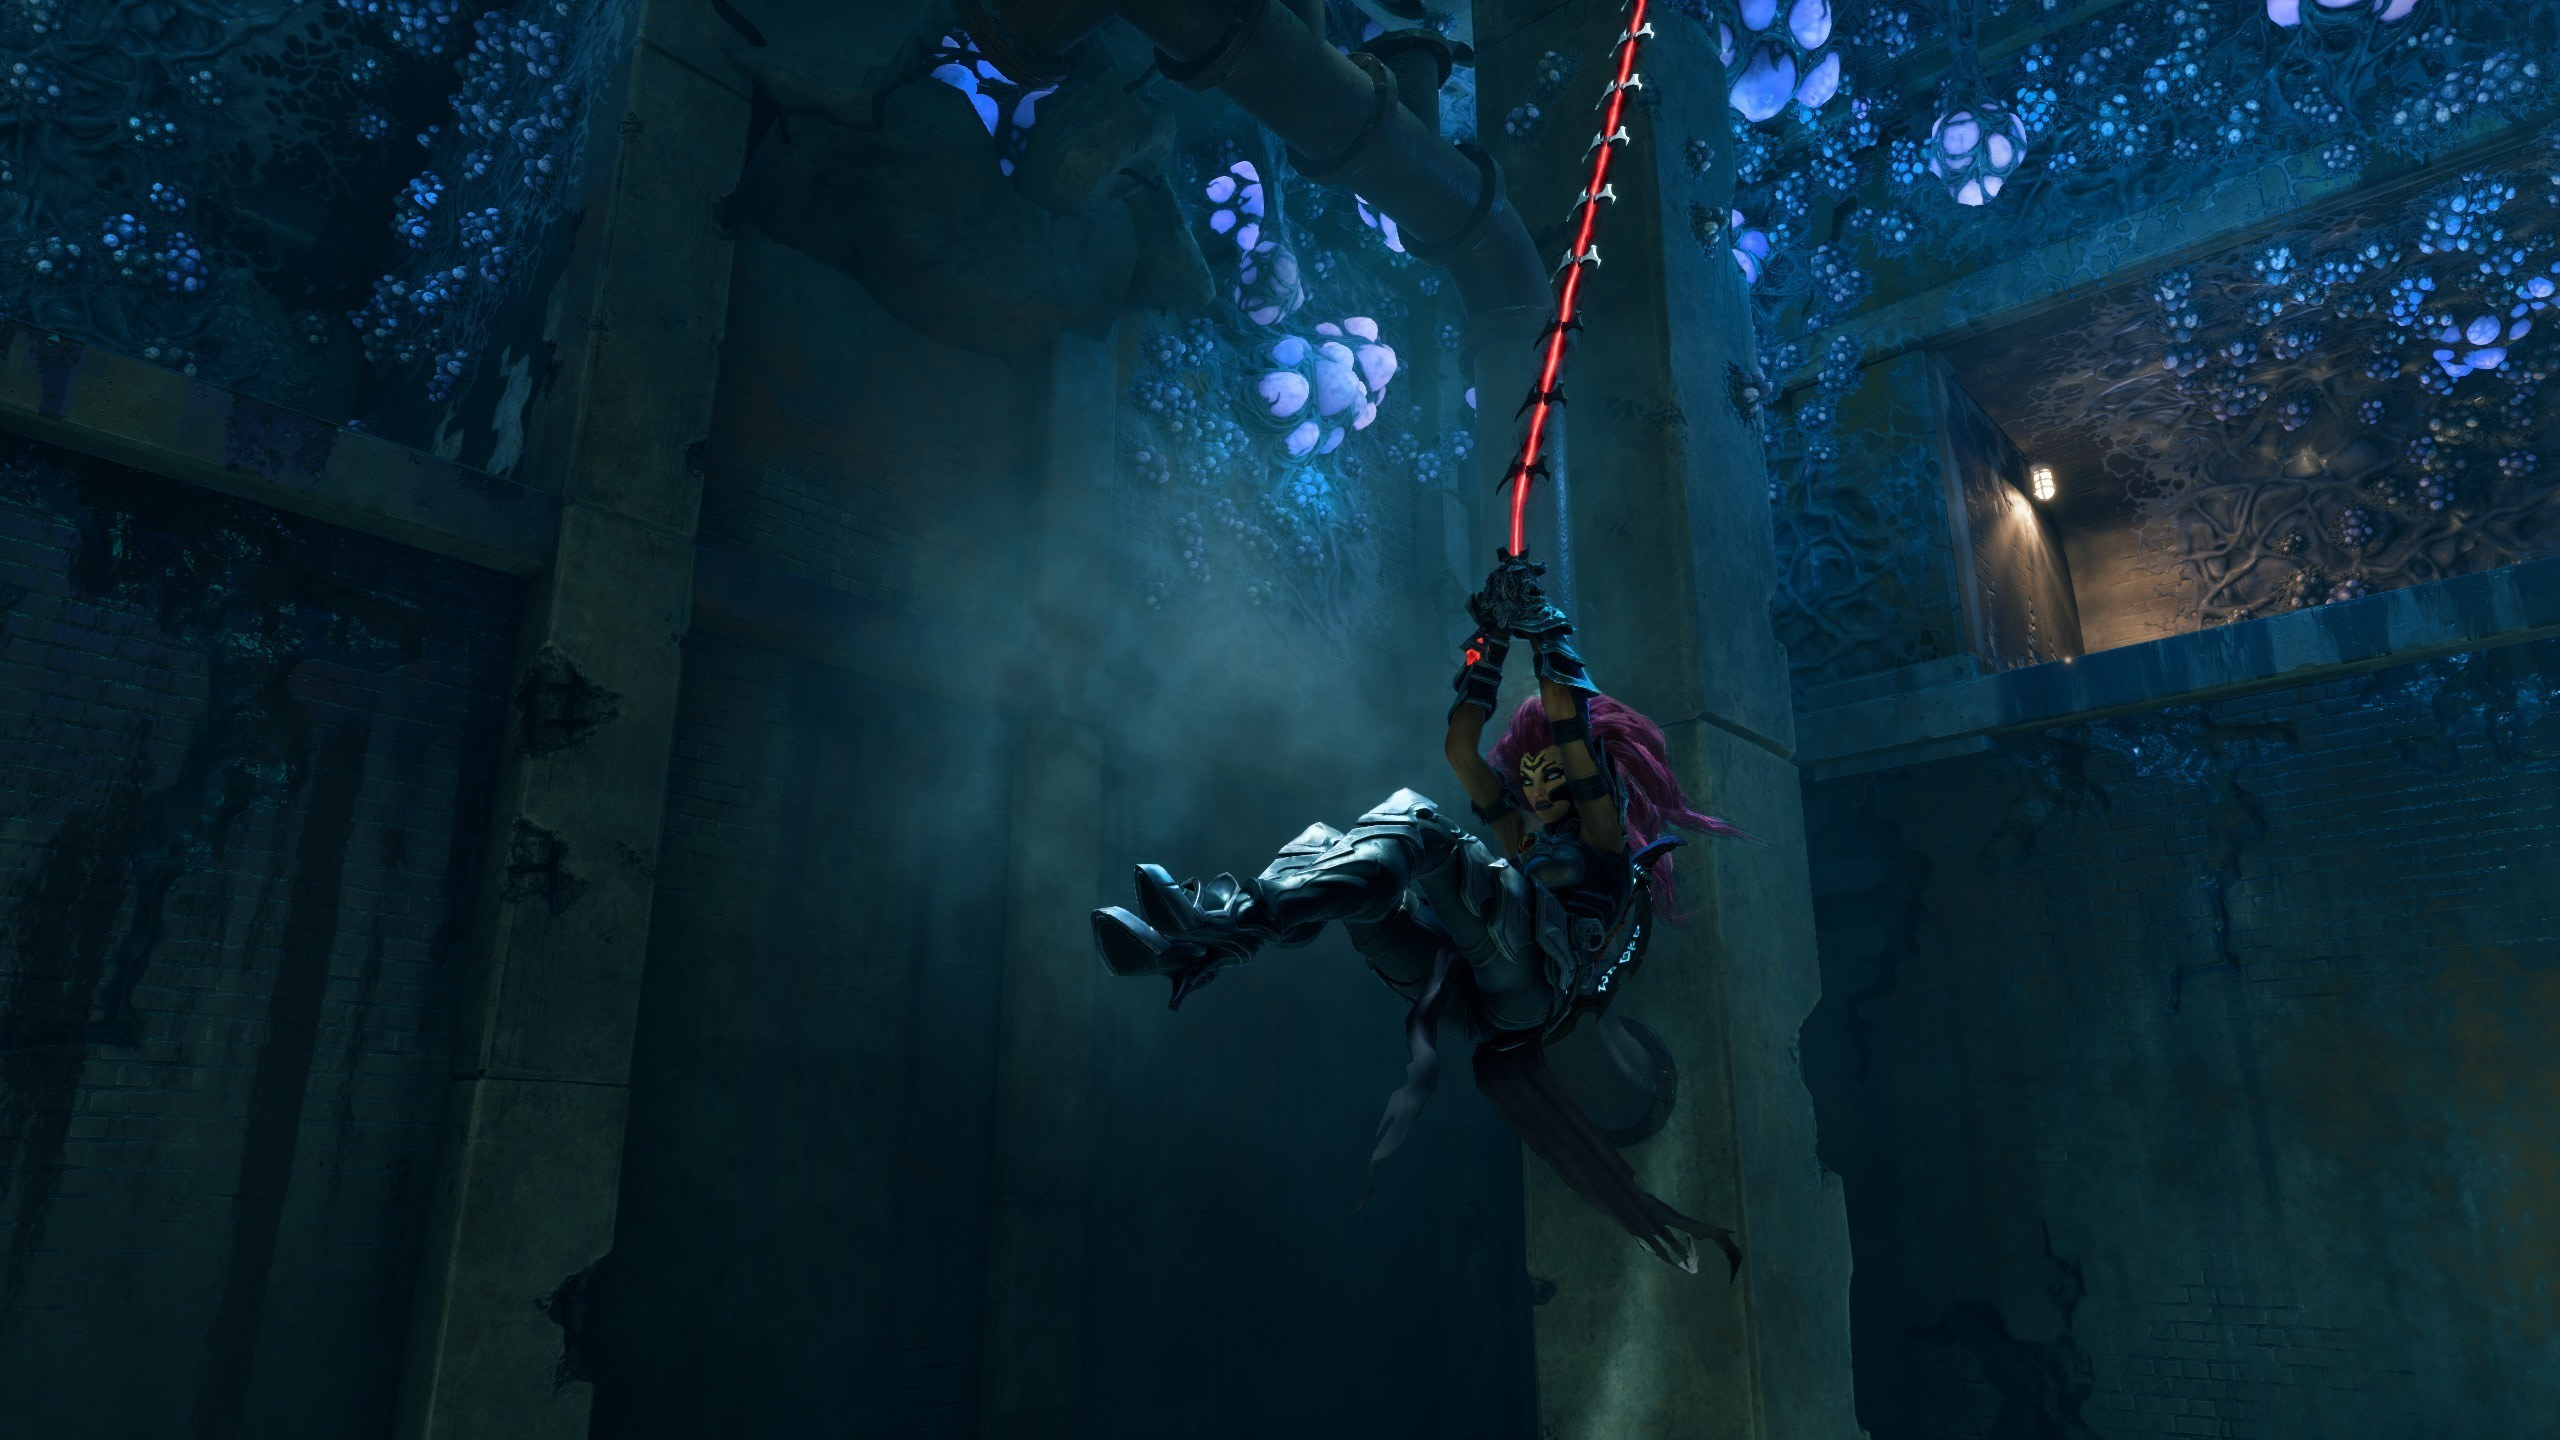 darksiders how to get to the hollows